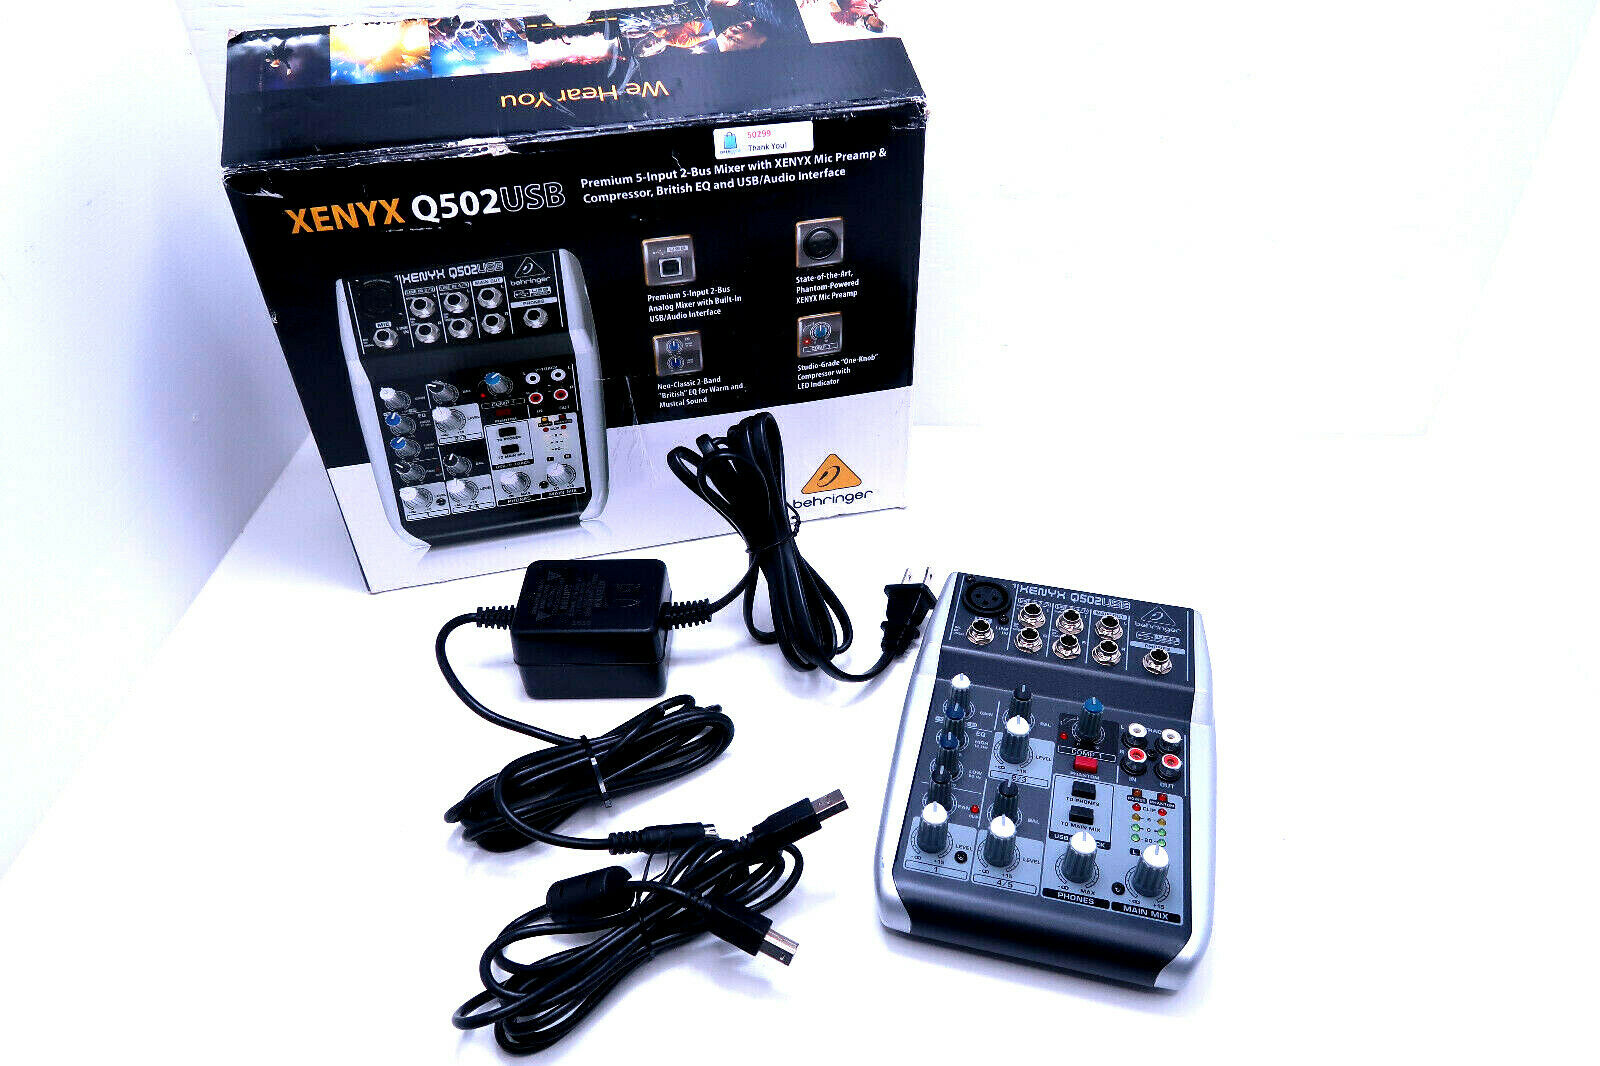 Behringer Xenyx Q502USB 5-Input 2-Bus Mixer Board w/ Power Supply & USB Cable. Buy it now for 115.89